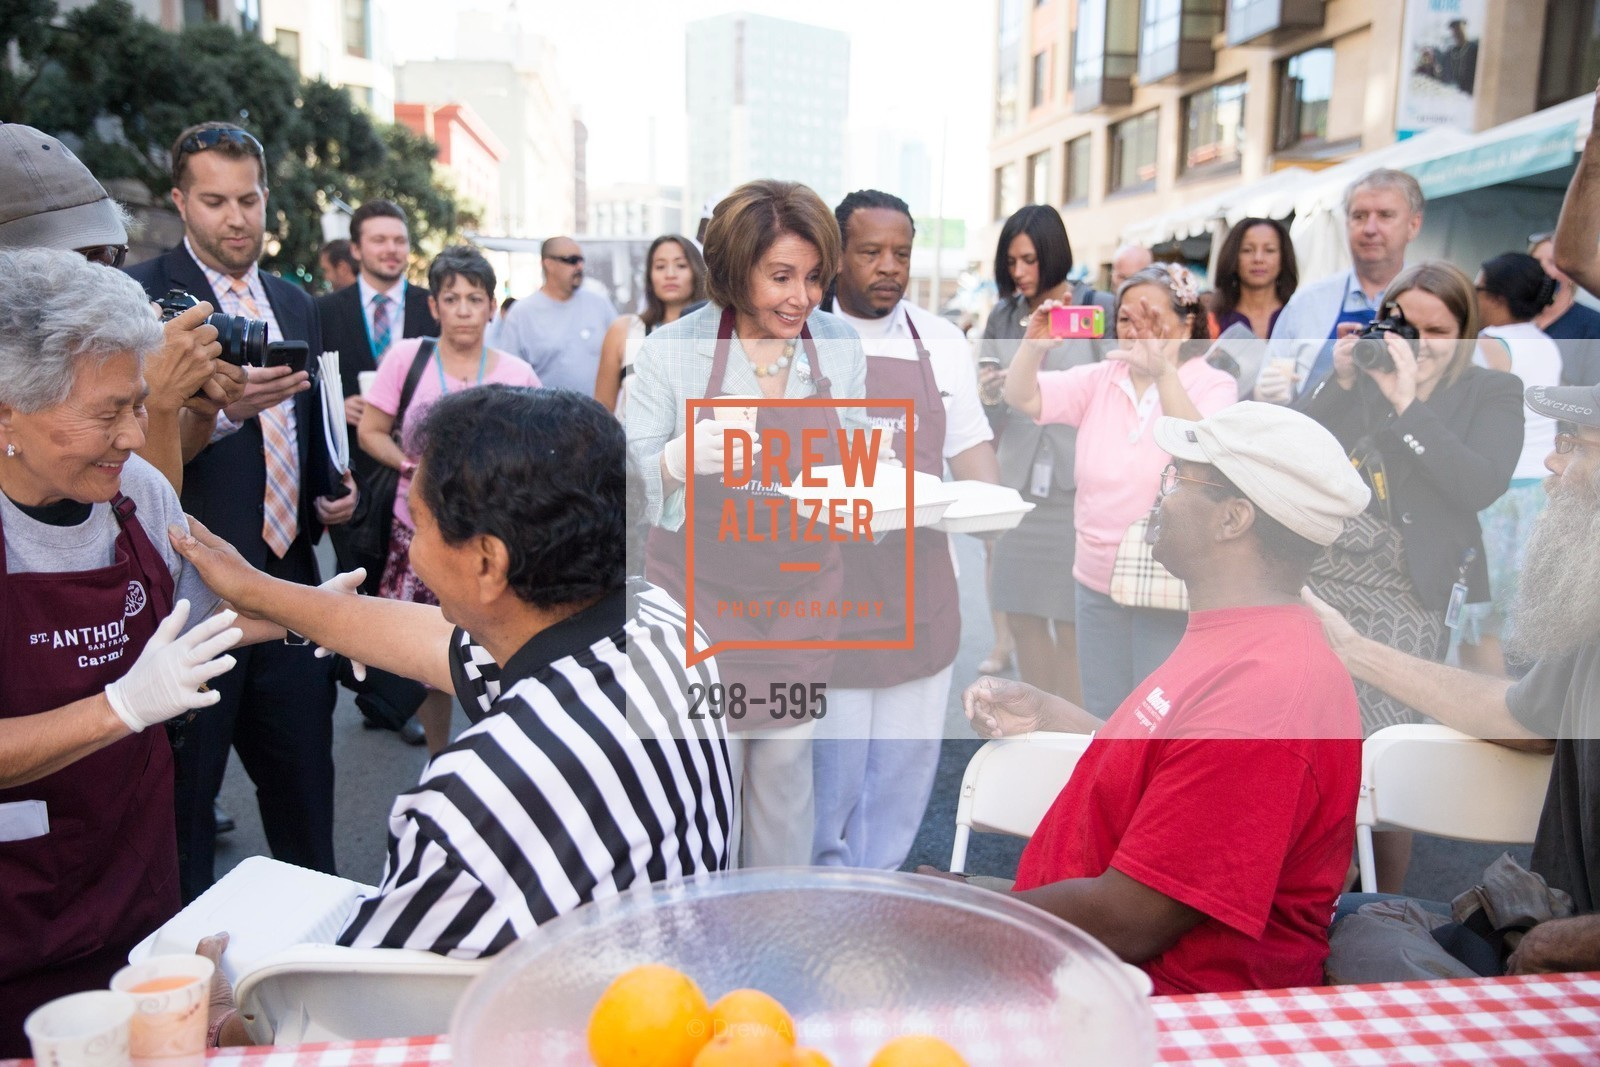 Carmelita Lozano, The Honorable Nancy Pelosi, Tyrone Hopper, ST. ANTHONY'S Dining Room Ribbon Cutting Ceremony, US, October 4th, 2014,Drew Altizer, Drew Altizer Photography, full-service agency, private events, San Francisco photographer, photographer california